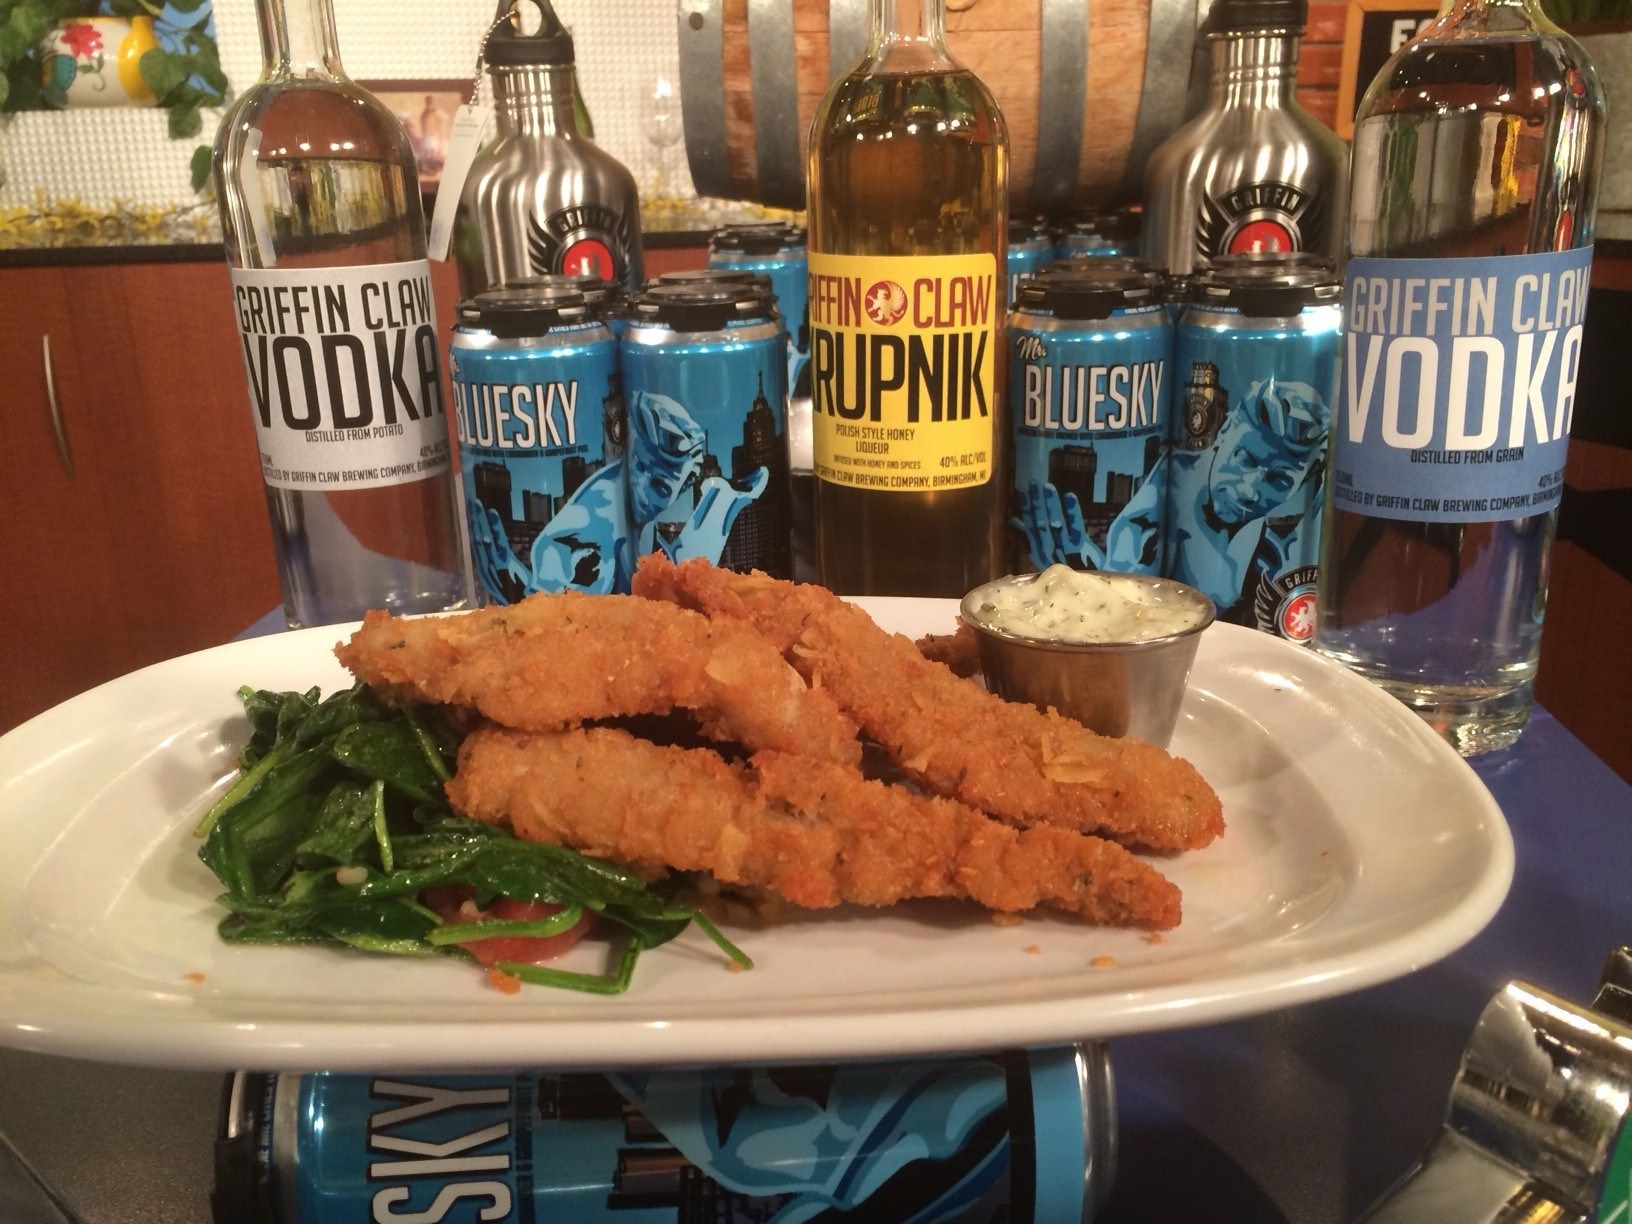 Better Maid crusted perch from Griffin Claw Brewing Co  - Fox 2 News